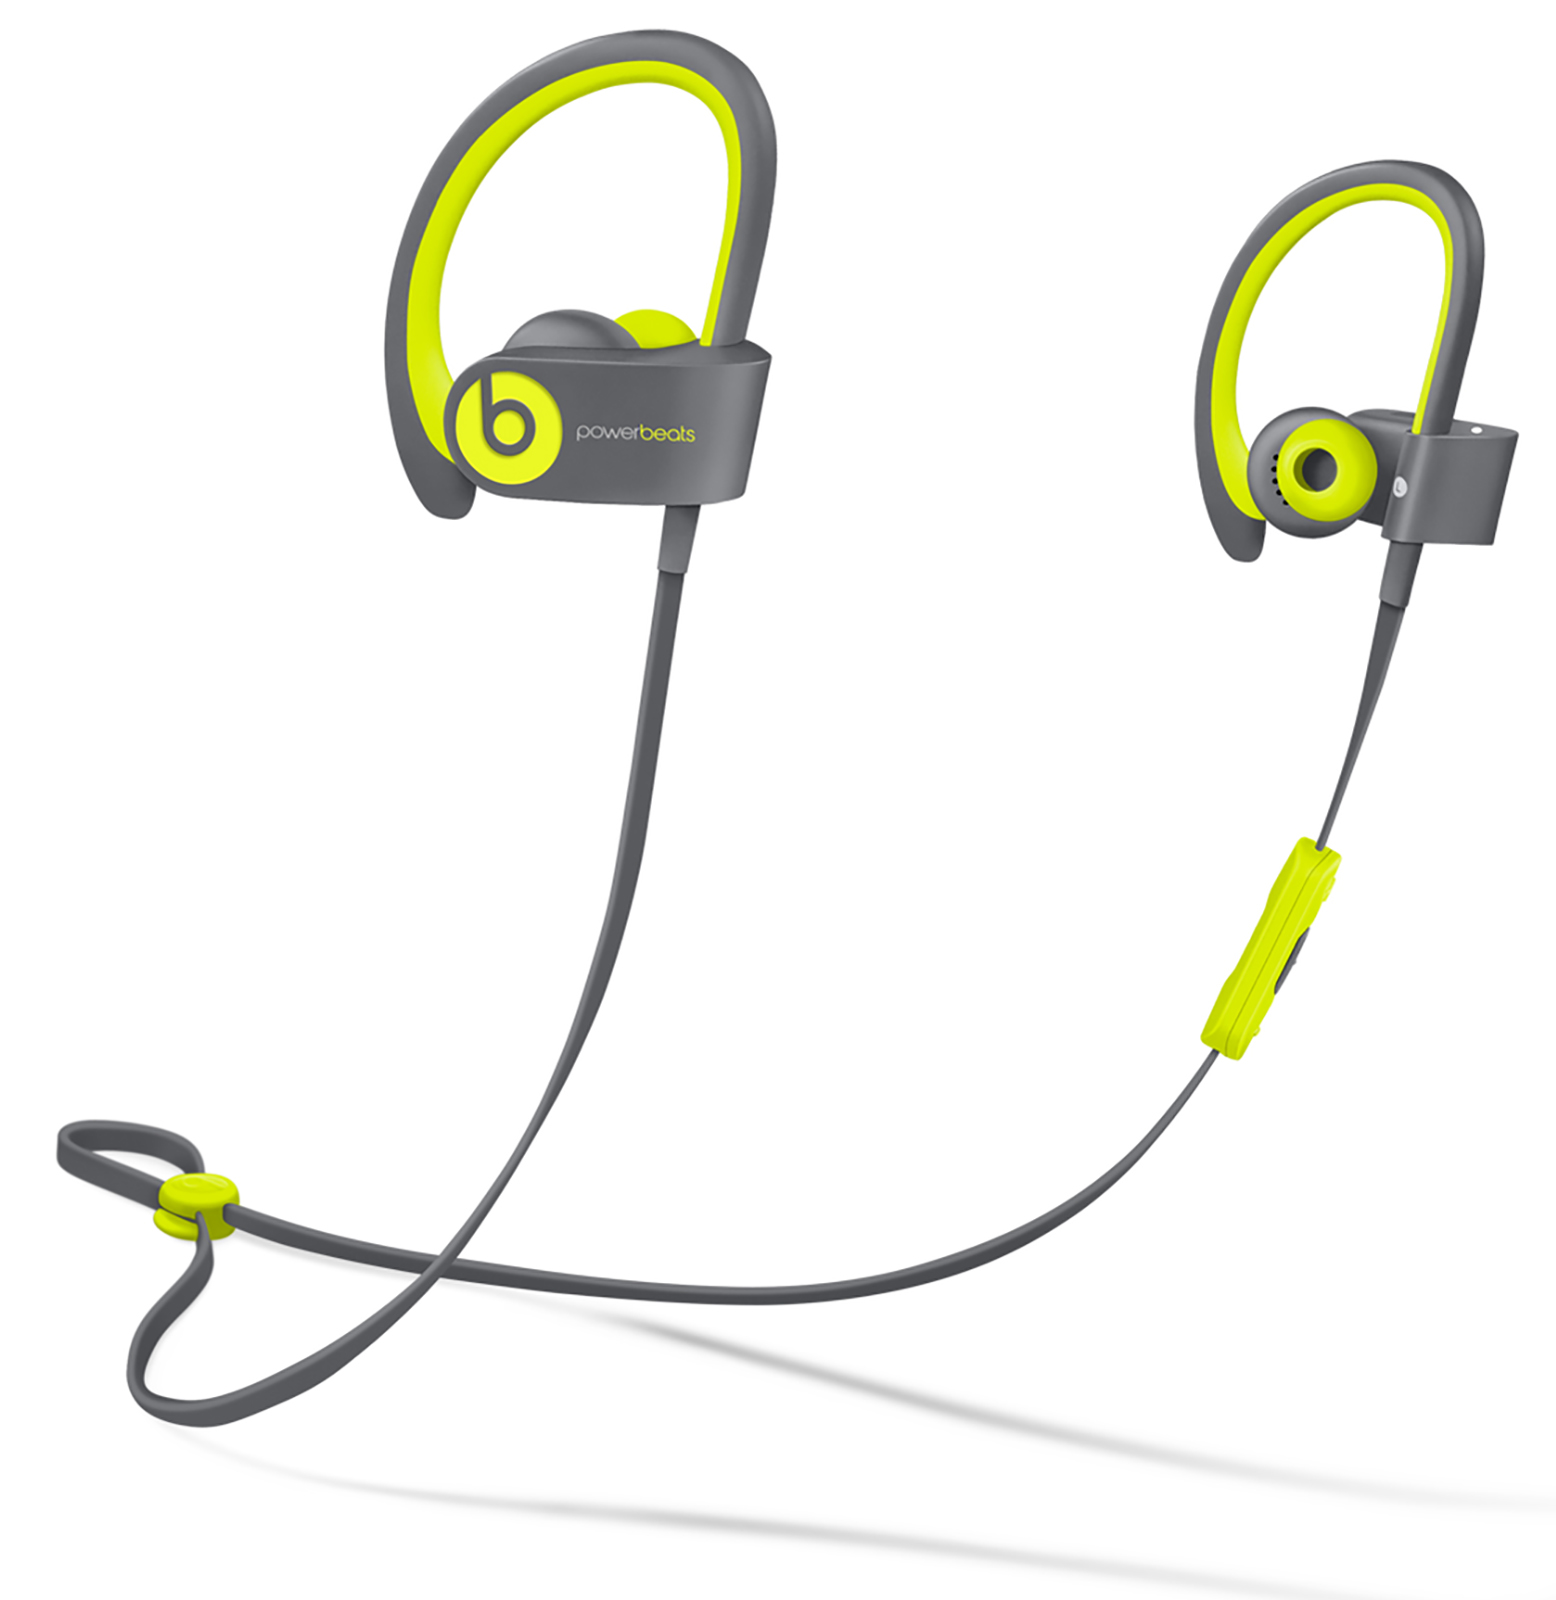 Beats by Dr. Dre Powerbeats2 Active/Sport Wireless In-Ear Sweat & Water Resistant Headphones - Shock Yellow (Refurbished)